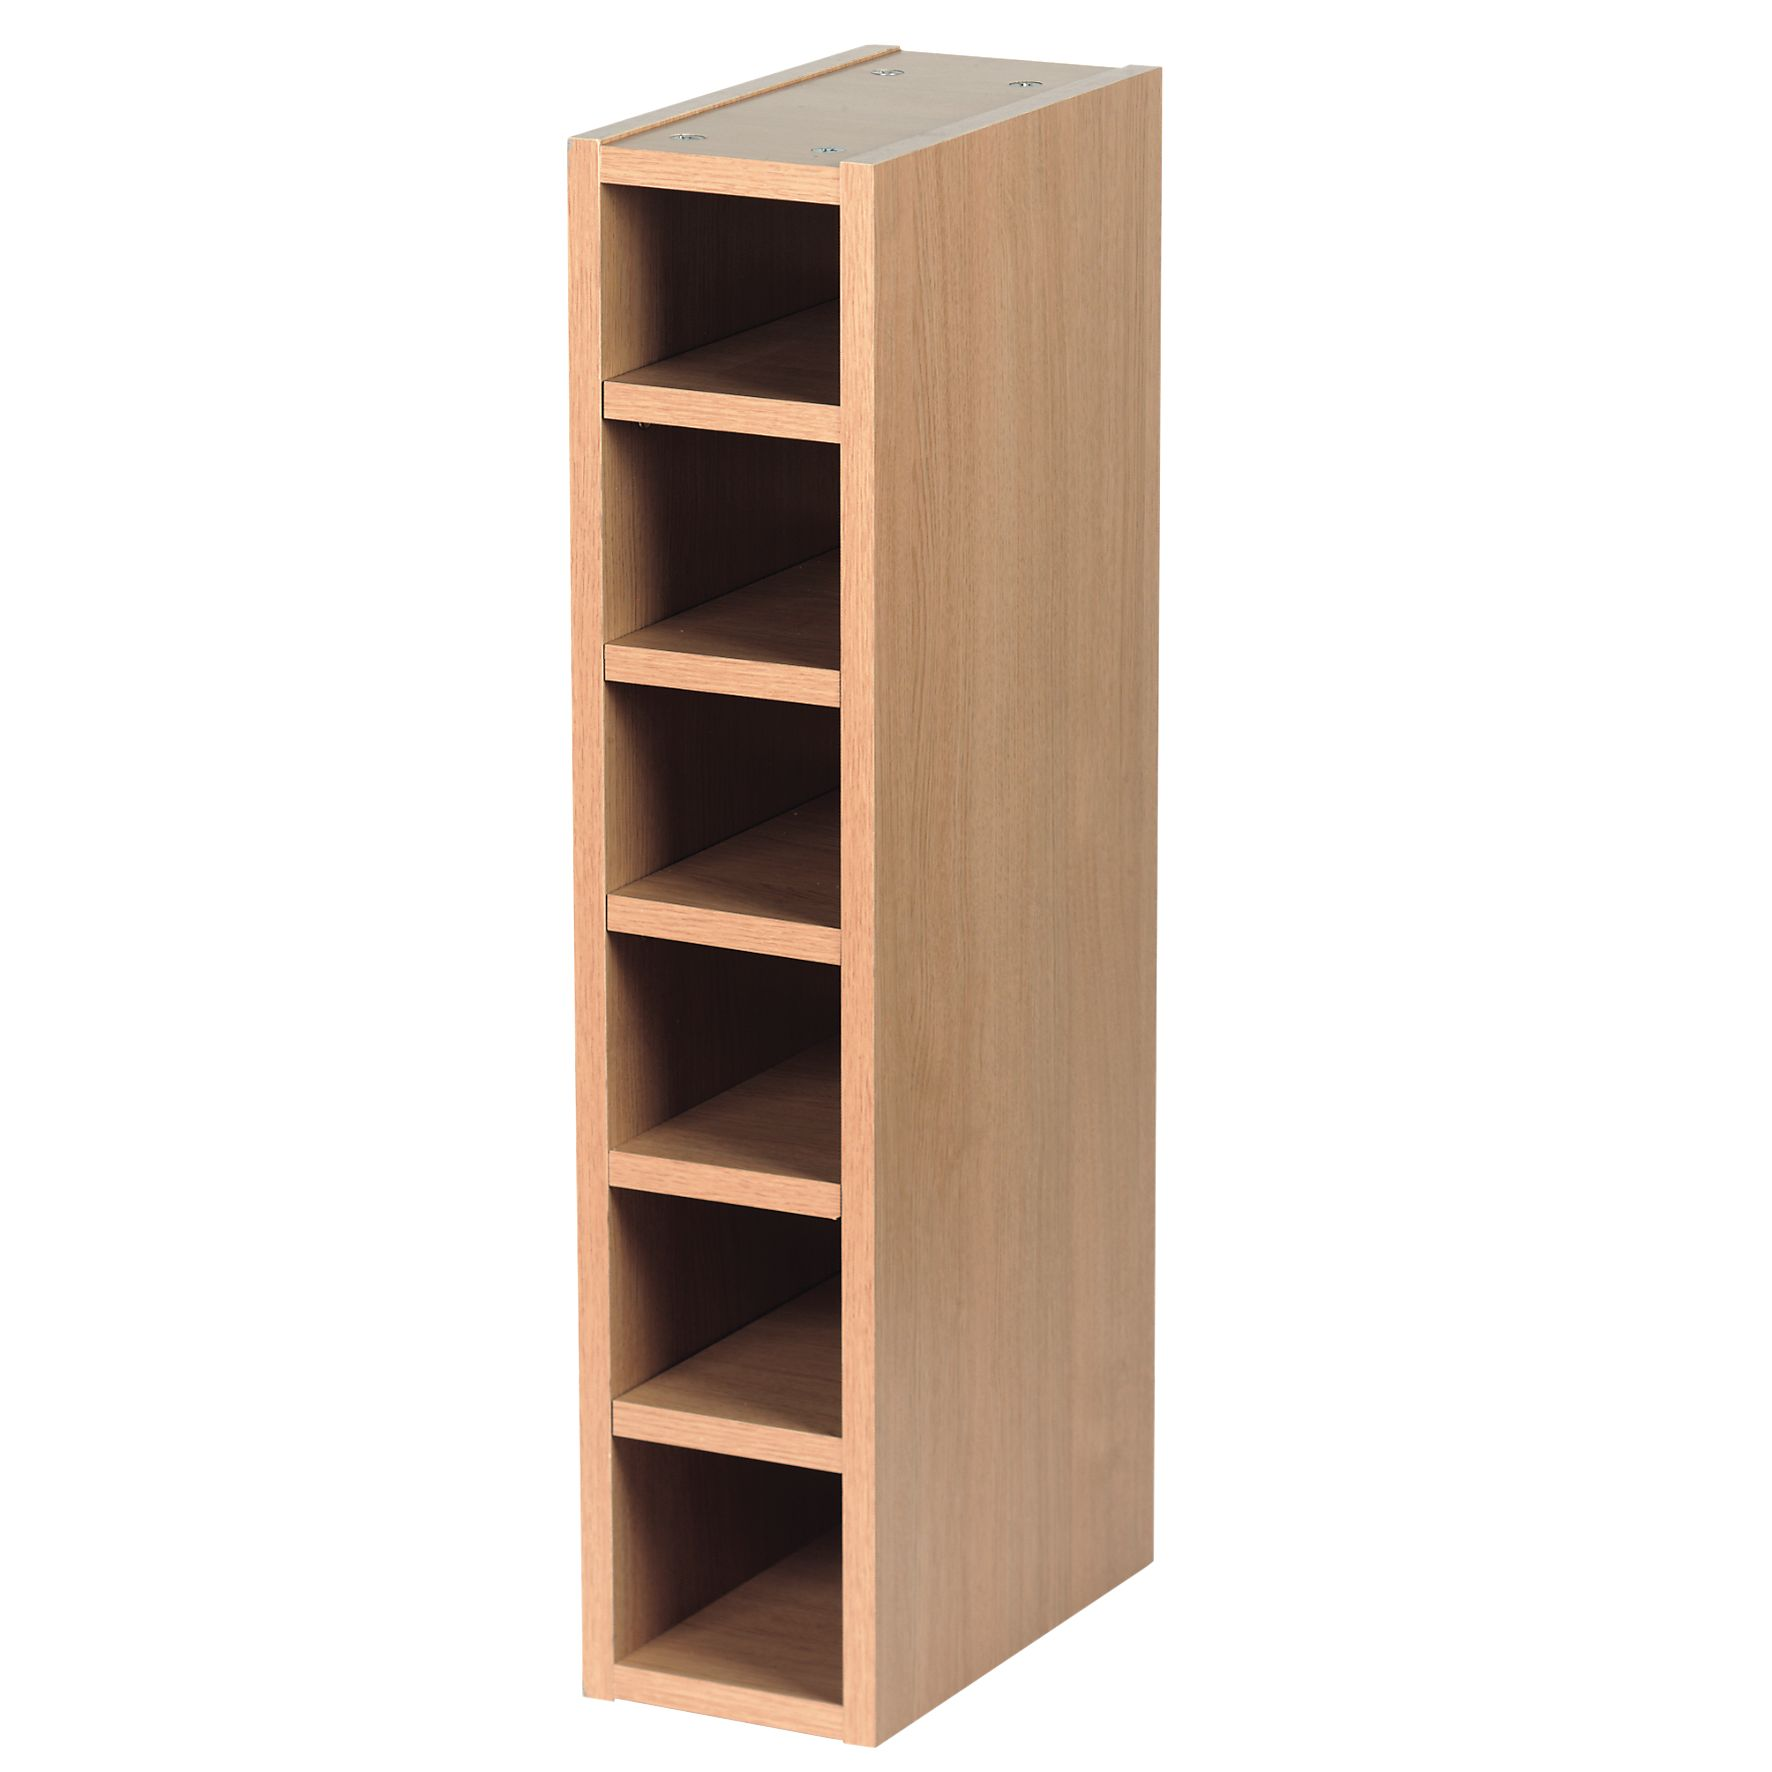 Kitchen Wine Rack It Kitchens Oak Style Shaker Wine Rack Cabinet W150mm